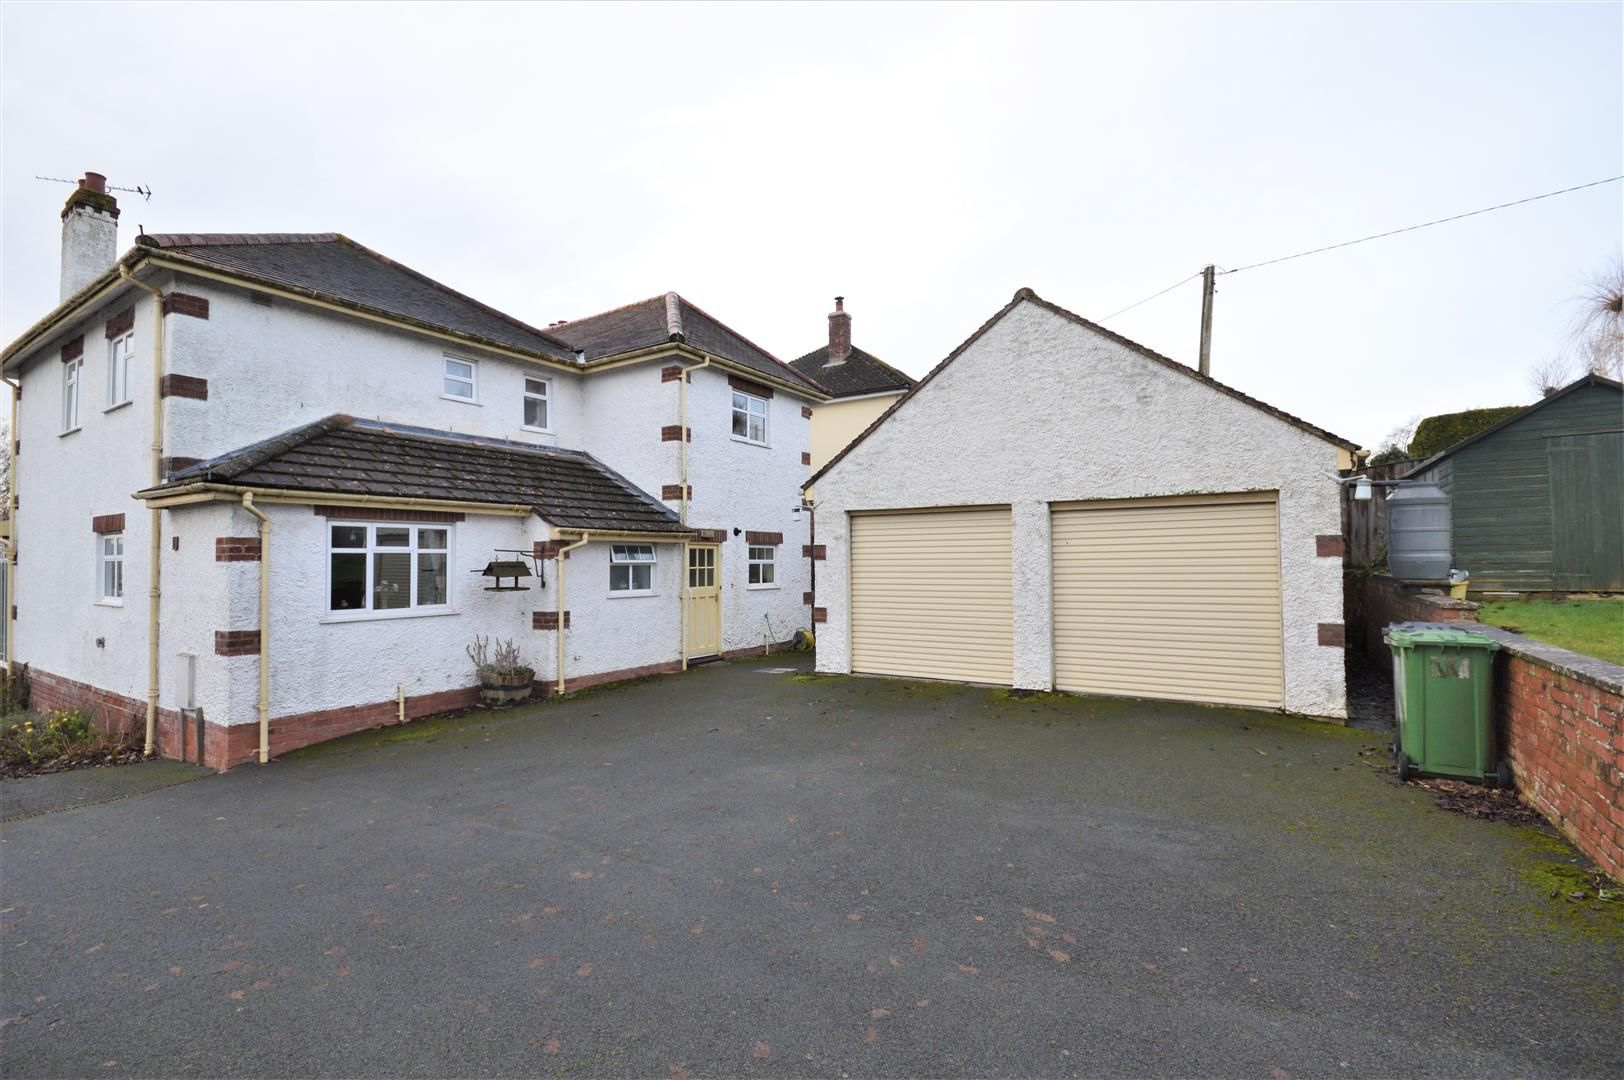 4 bed detached for sale in Bobblestock 3